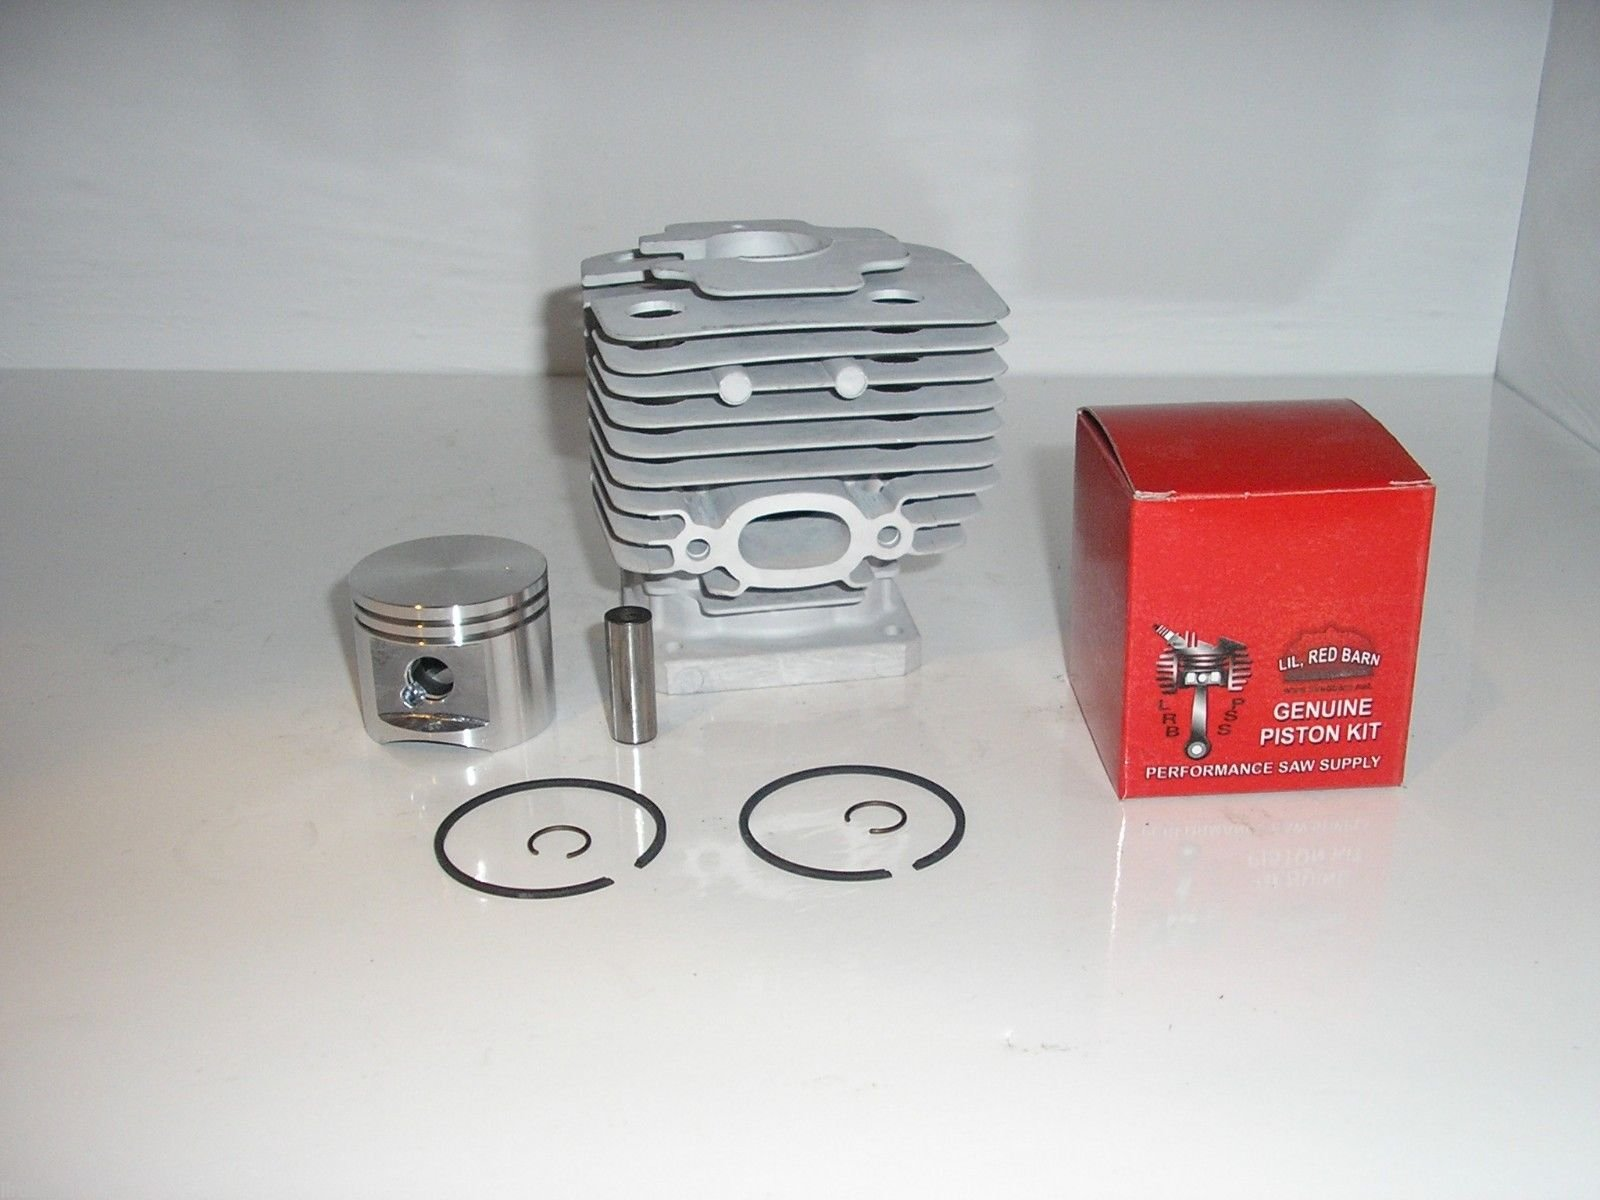 Lil Red Barn Stihl Fs450 Cylinder & Piston Kit, 42mm, Replaces Stihl # 4128-020-1211 Quality Tooling Ships from The USA Installation Instructions Included